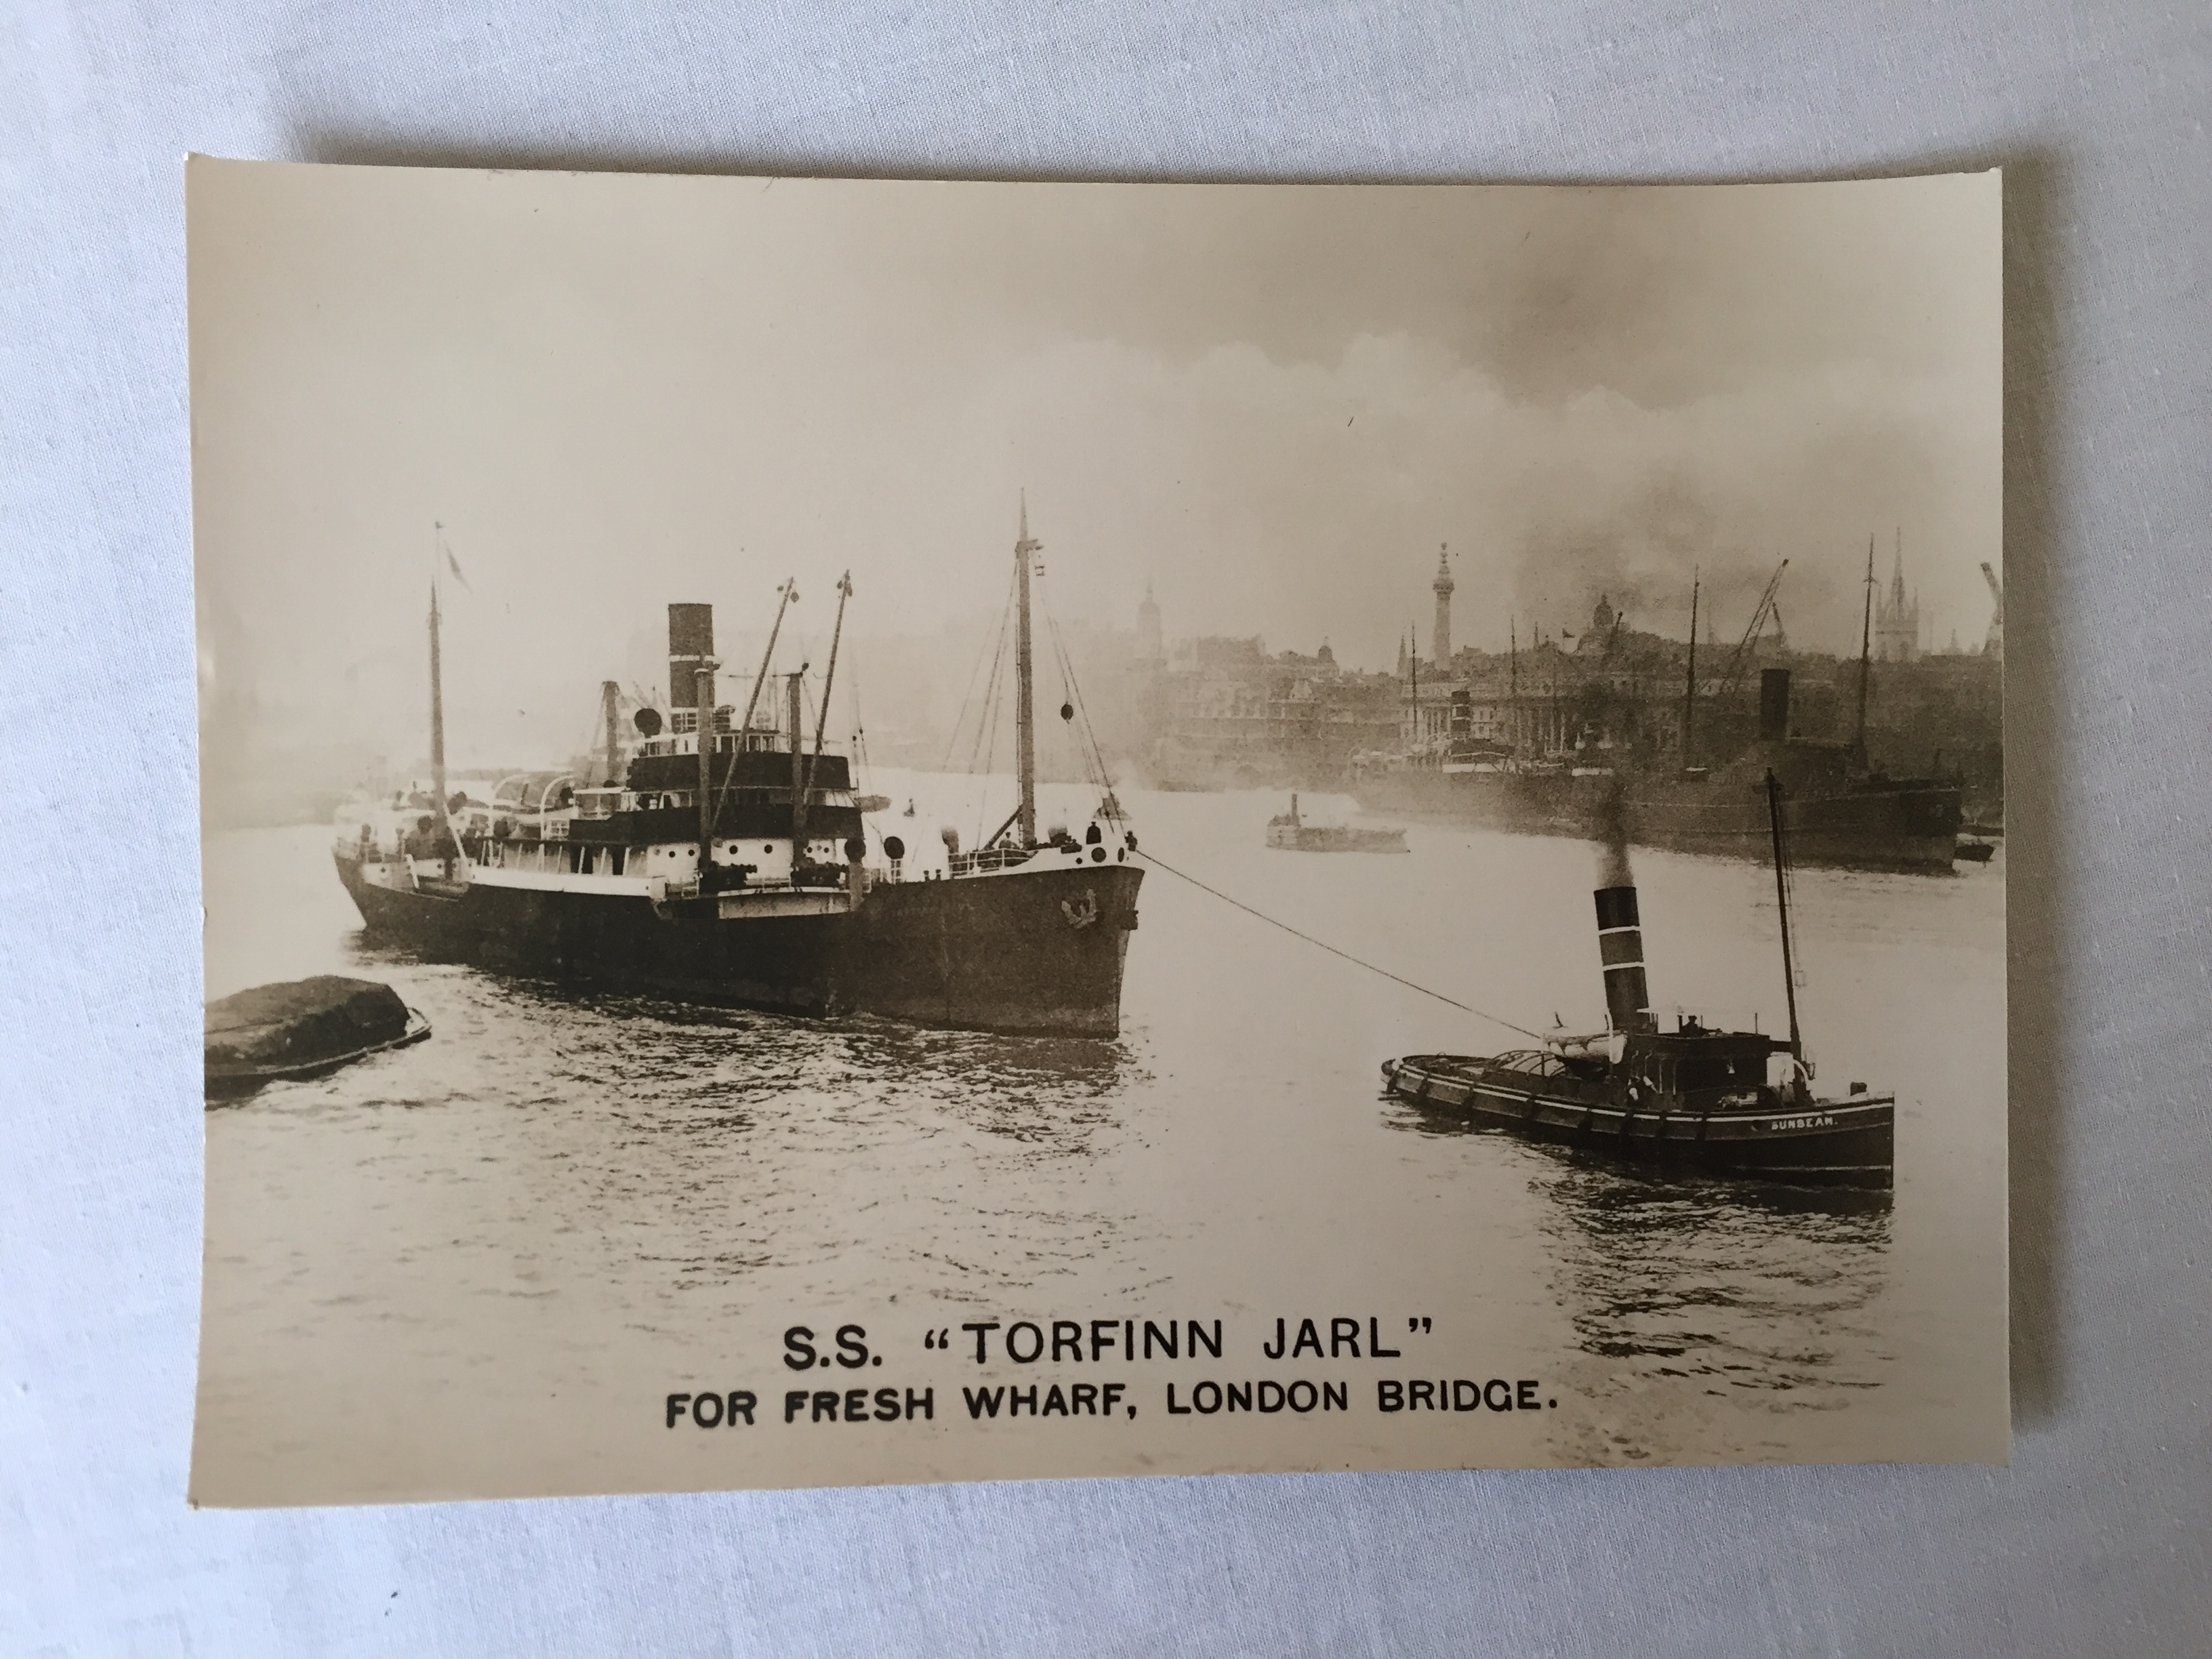 ORIGINAL VERY OLD B/W PHOTOGRAPH TAKEN BY THE OLD LIGHTER MAN FRED SMALL OF THE VESSEL THE SS TORFINN JARL